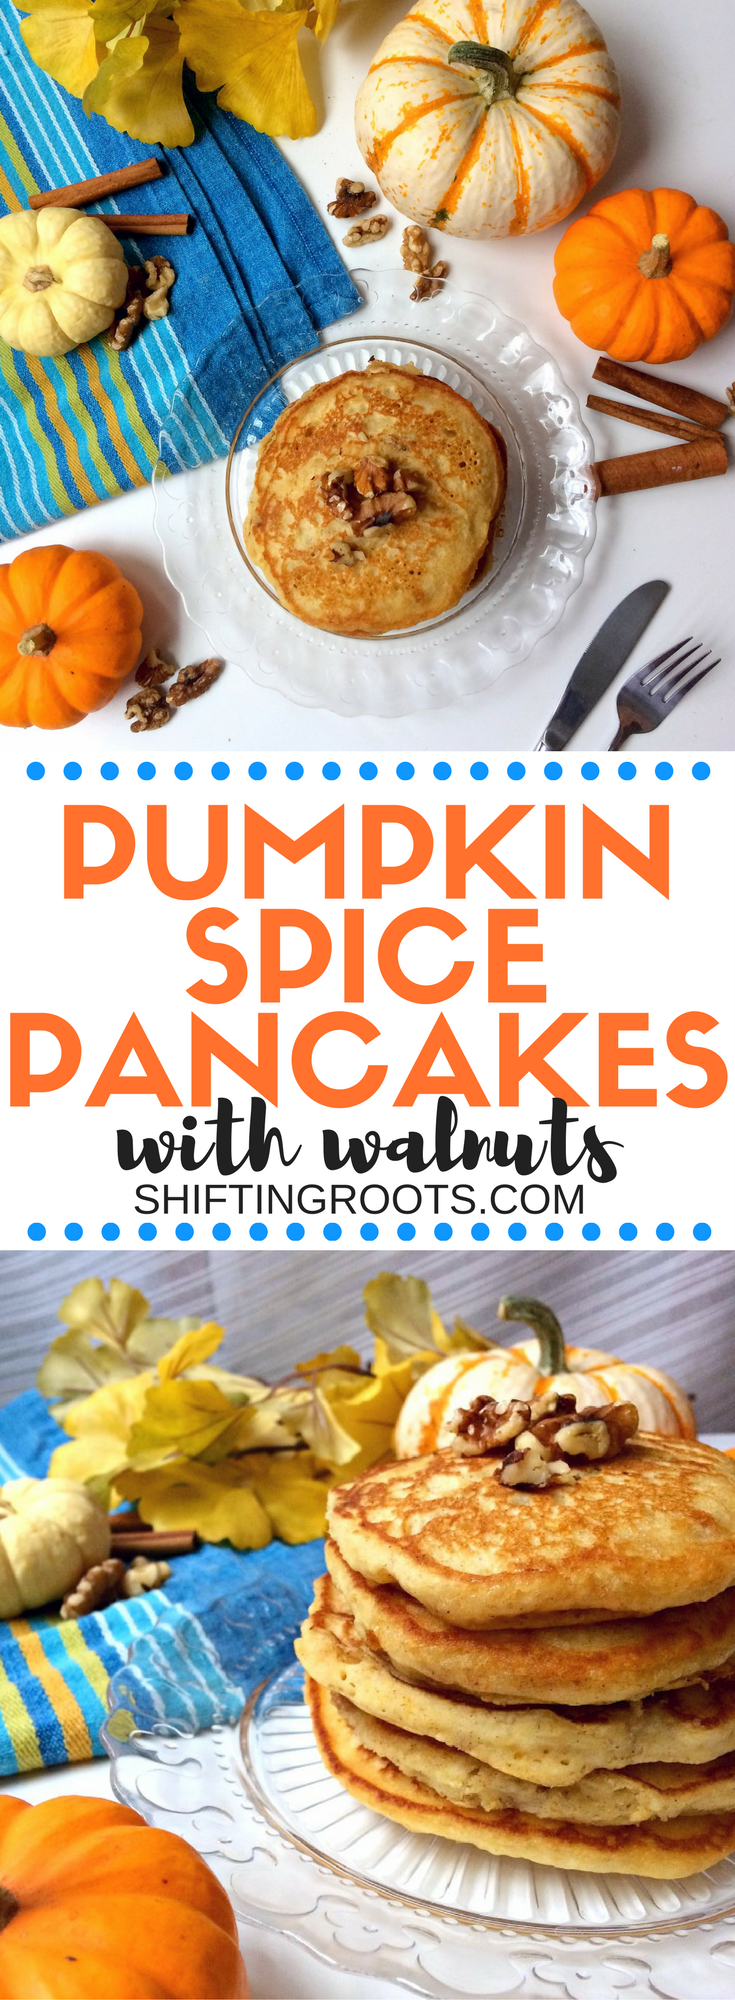 Quick and Easy Pumpkin Spice Pancakes with Walnuts ...